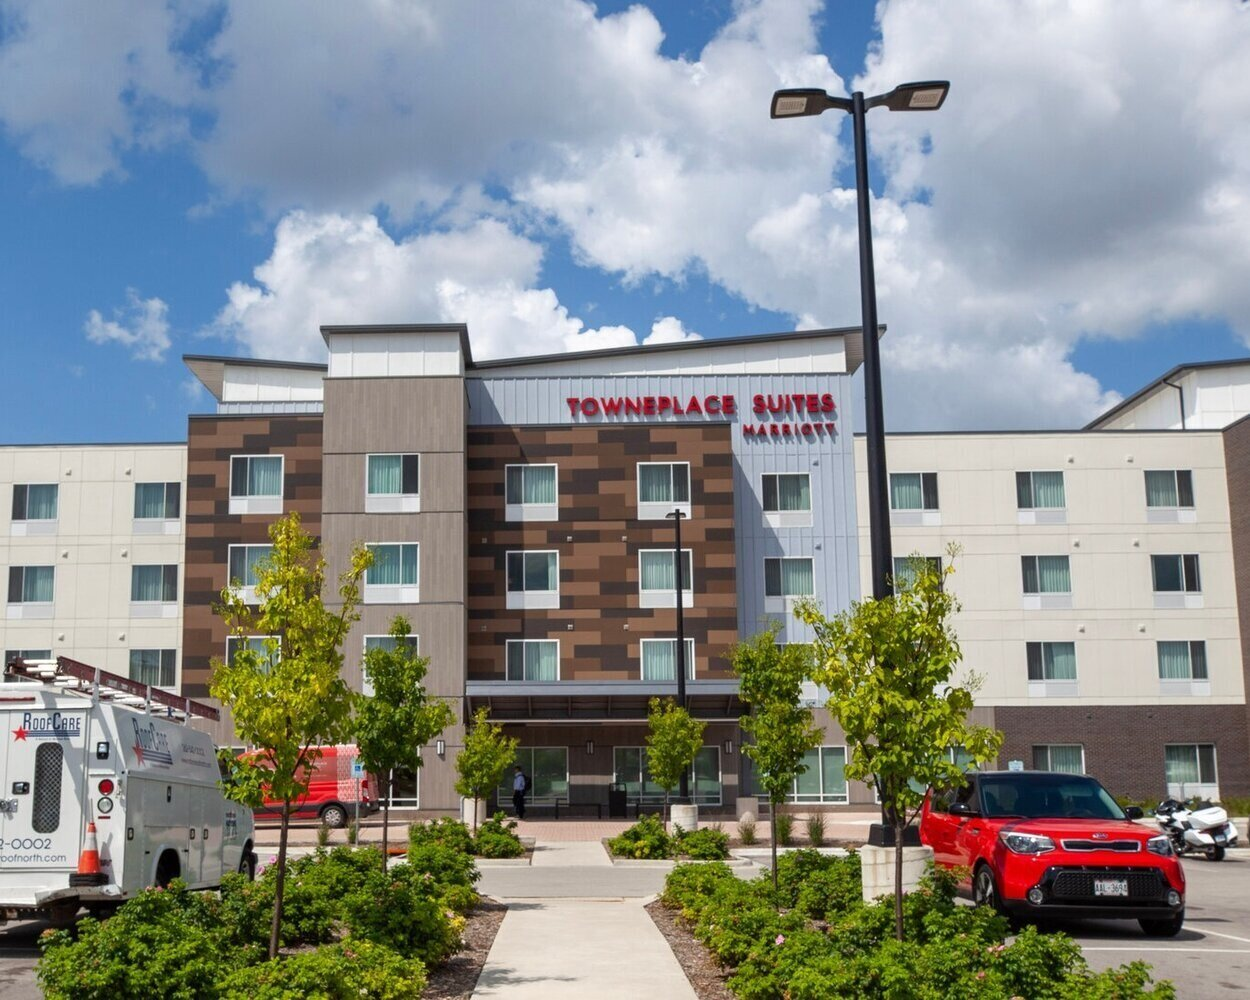 Marriott Townplace Suites, Oak Creek, WI